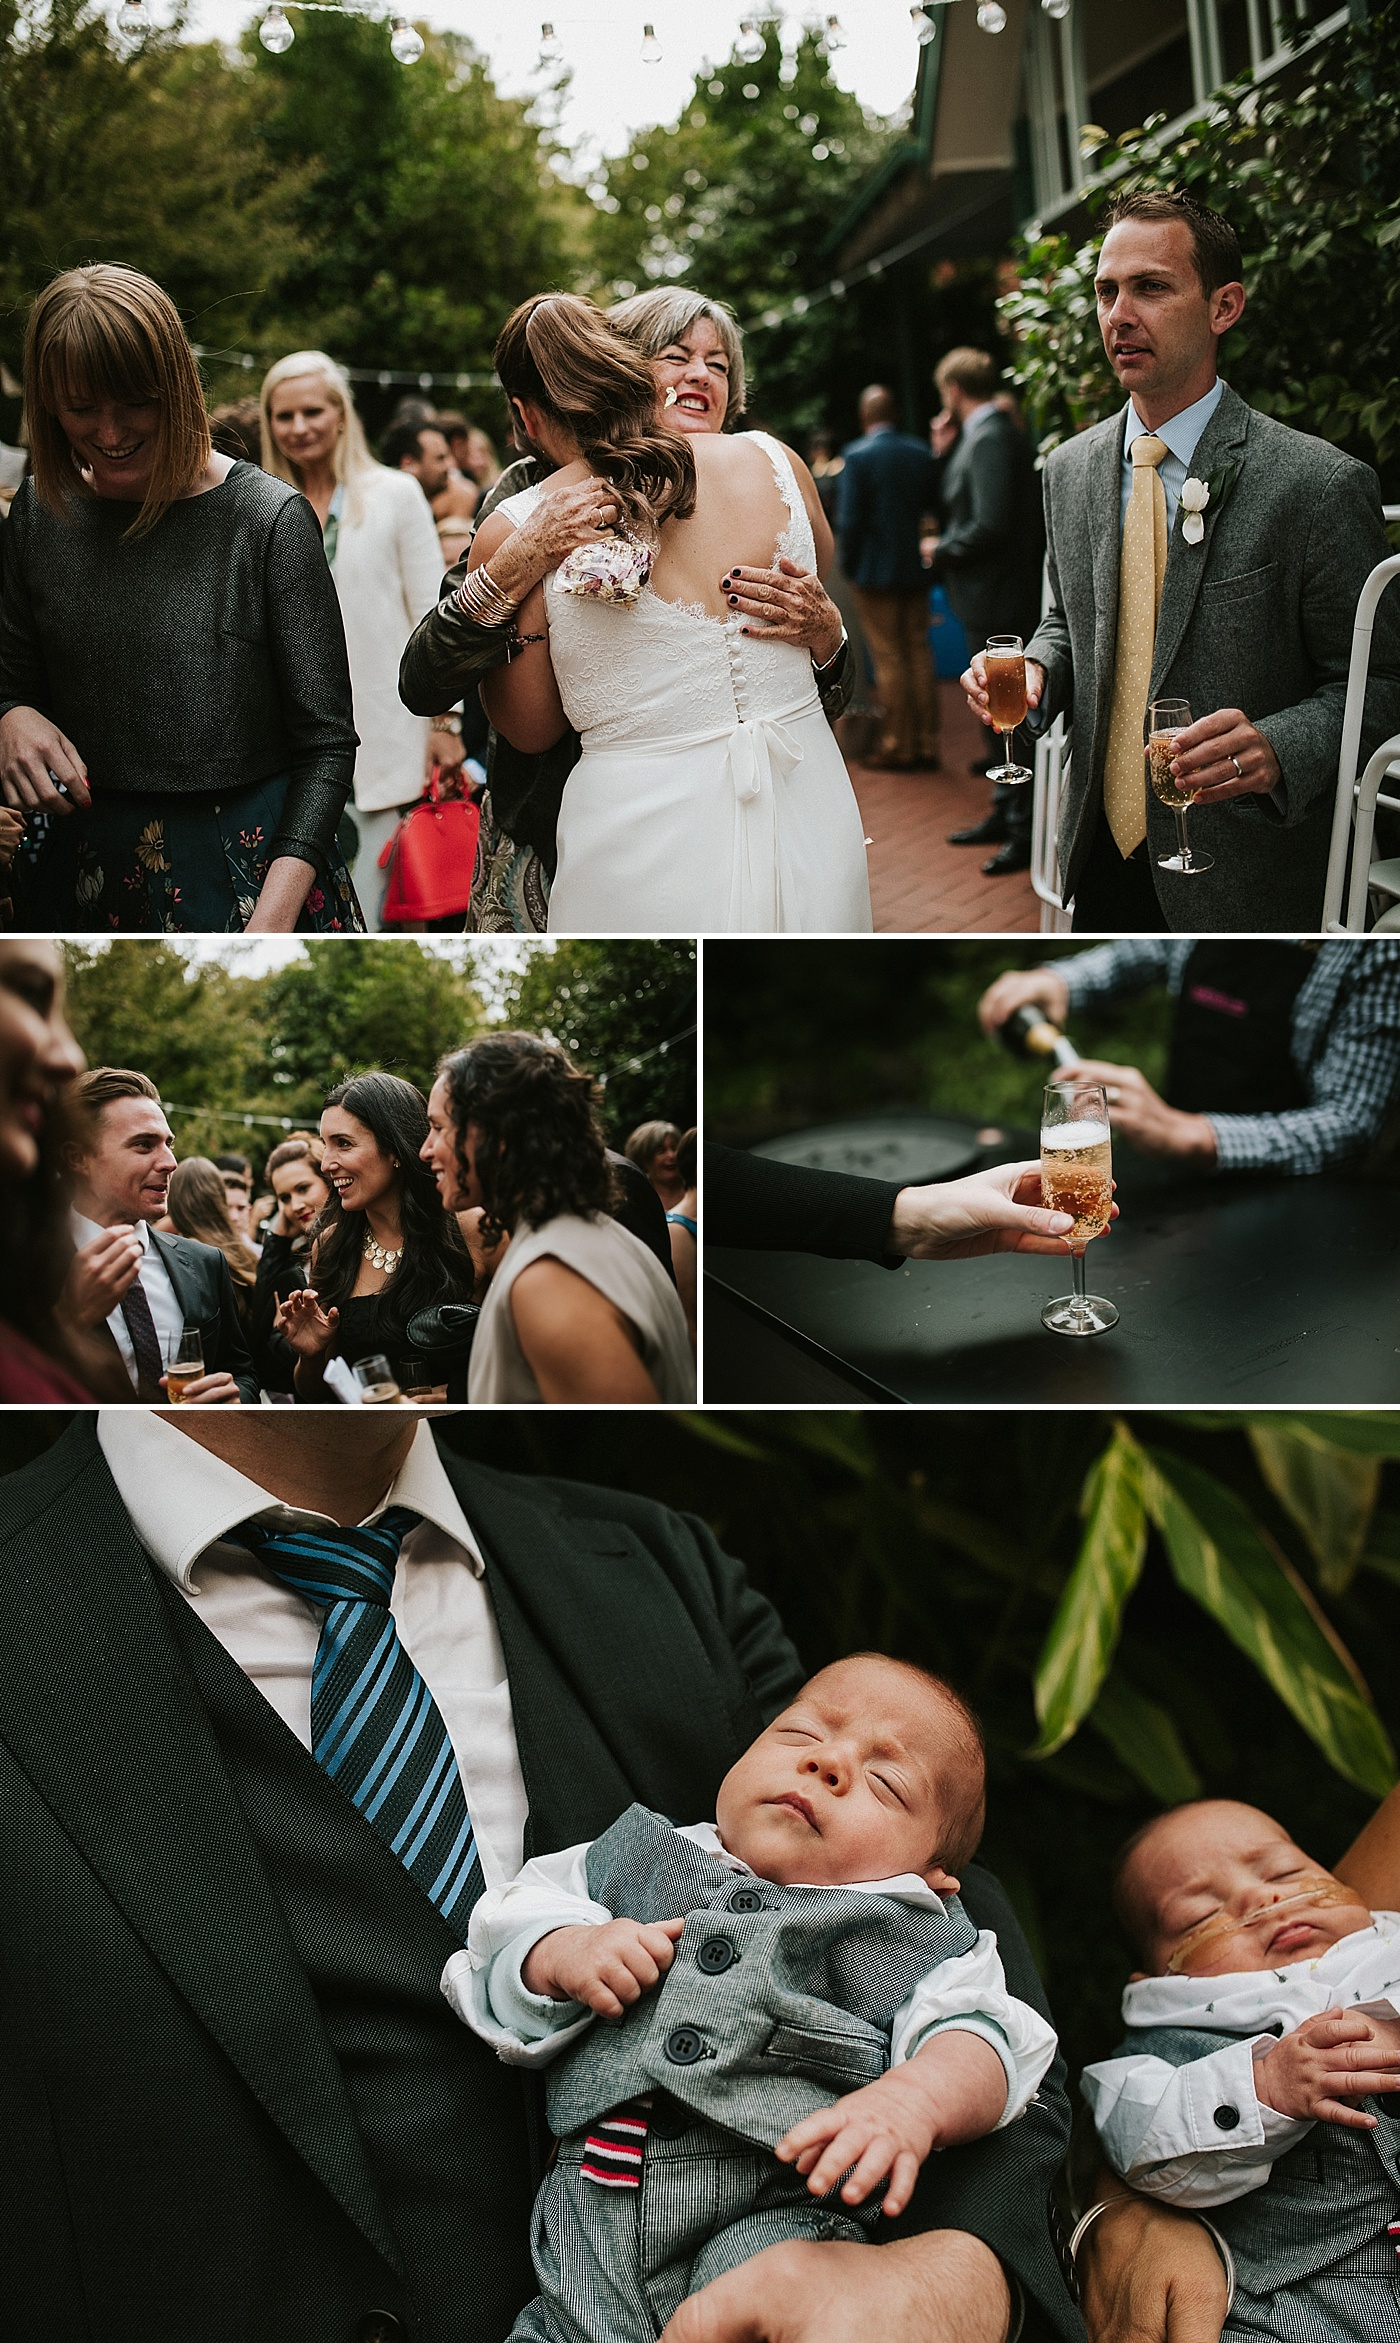 Brooke&David_Melbourne-Quirky-Relaxed-Fun-Casual-Backyard-Wedding_Melbourne-Wedding-Photography-58